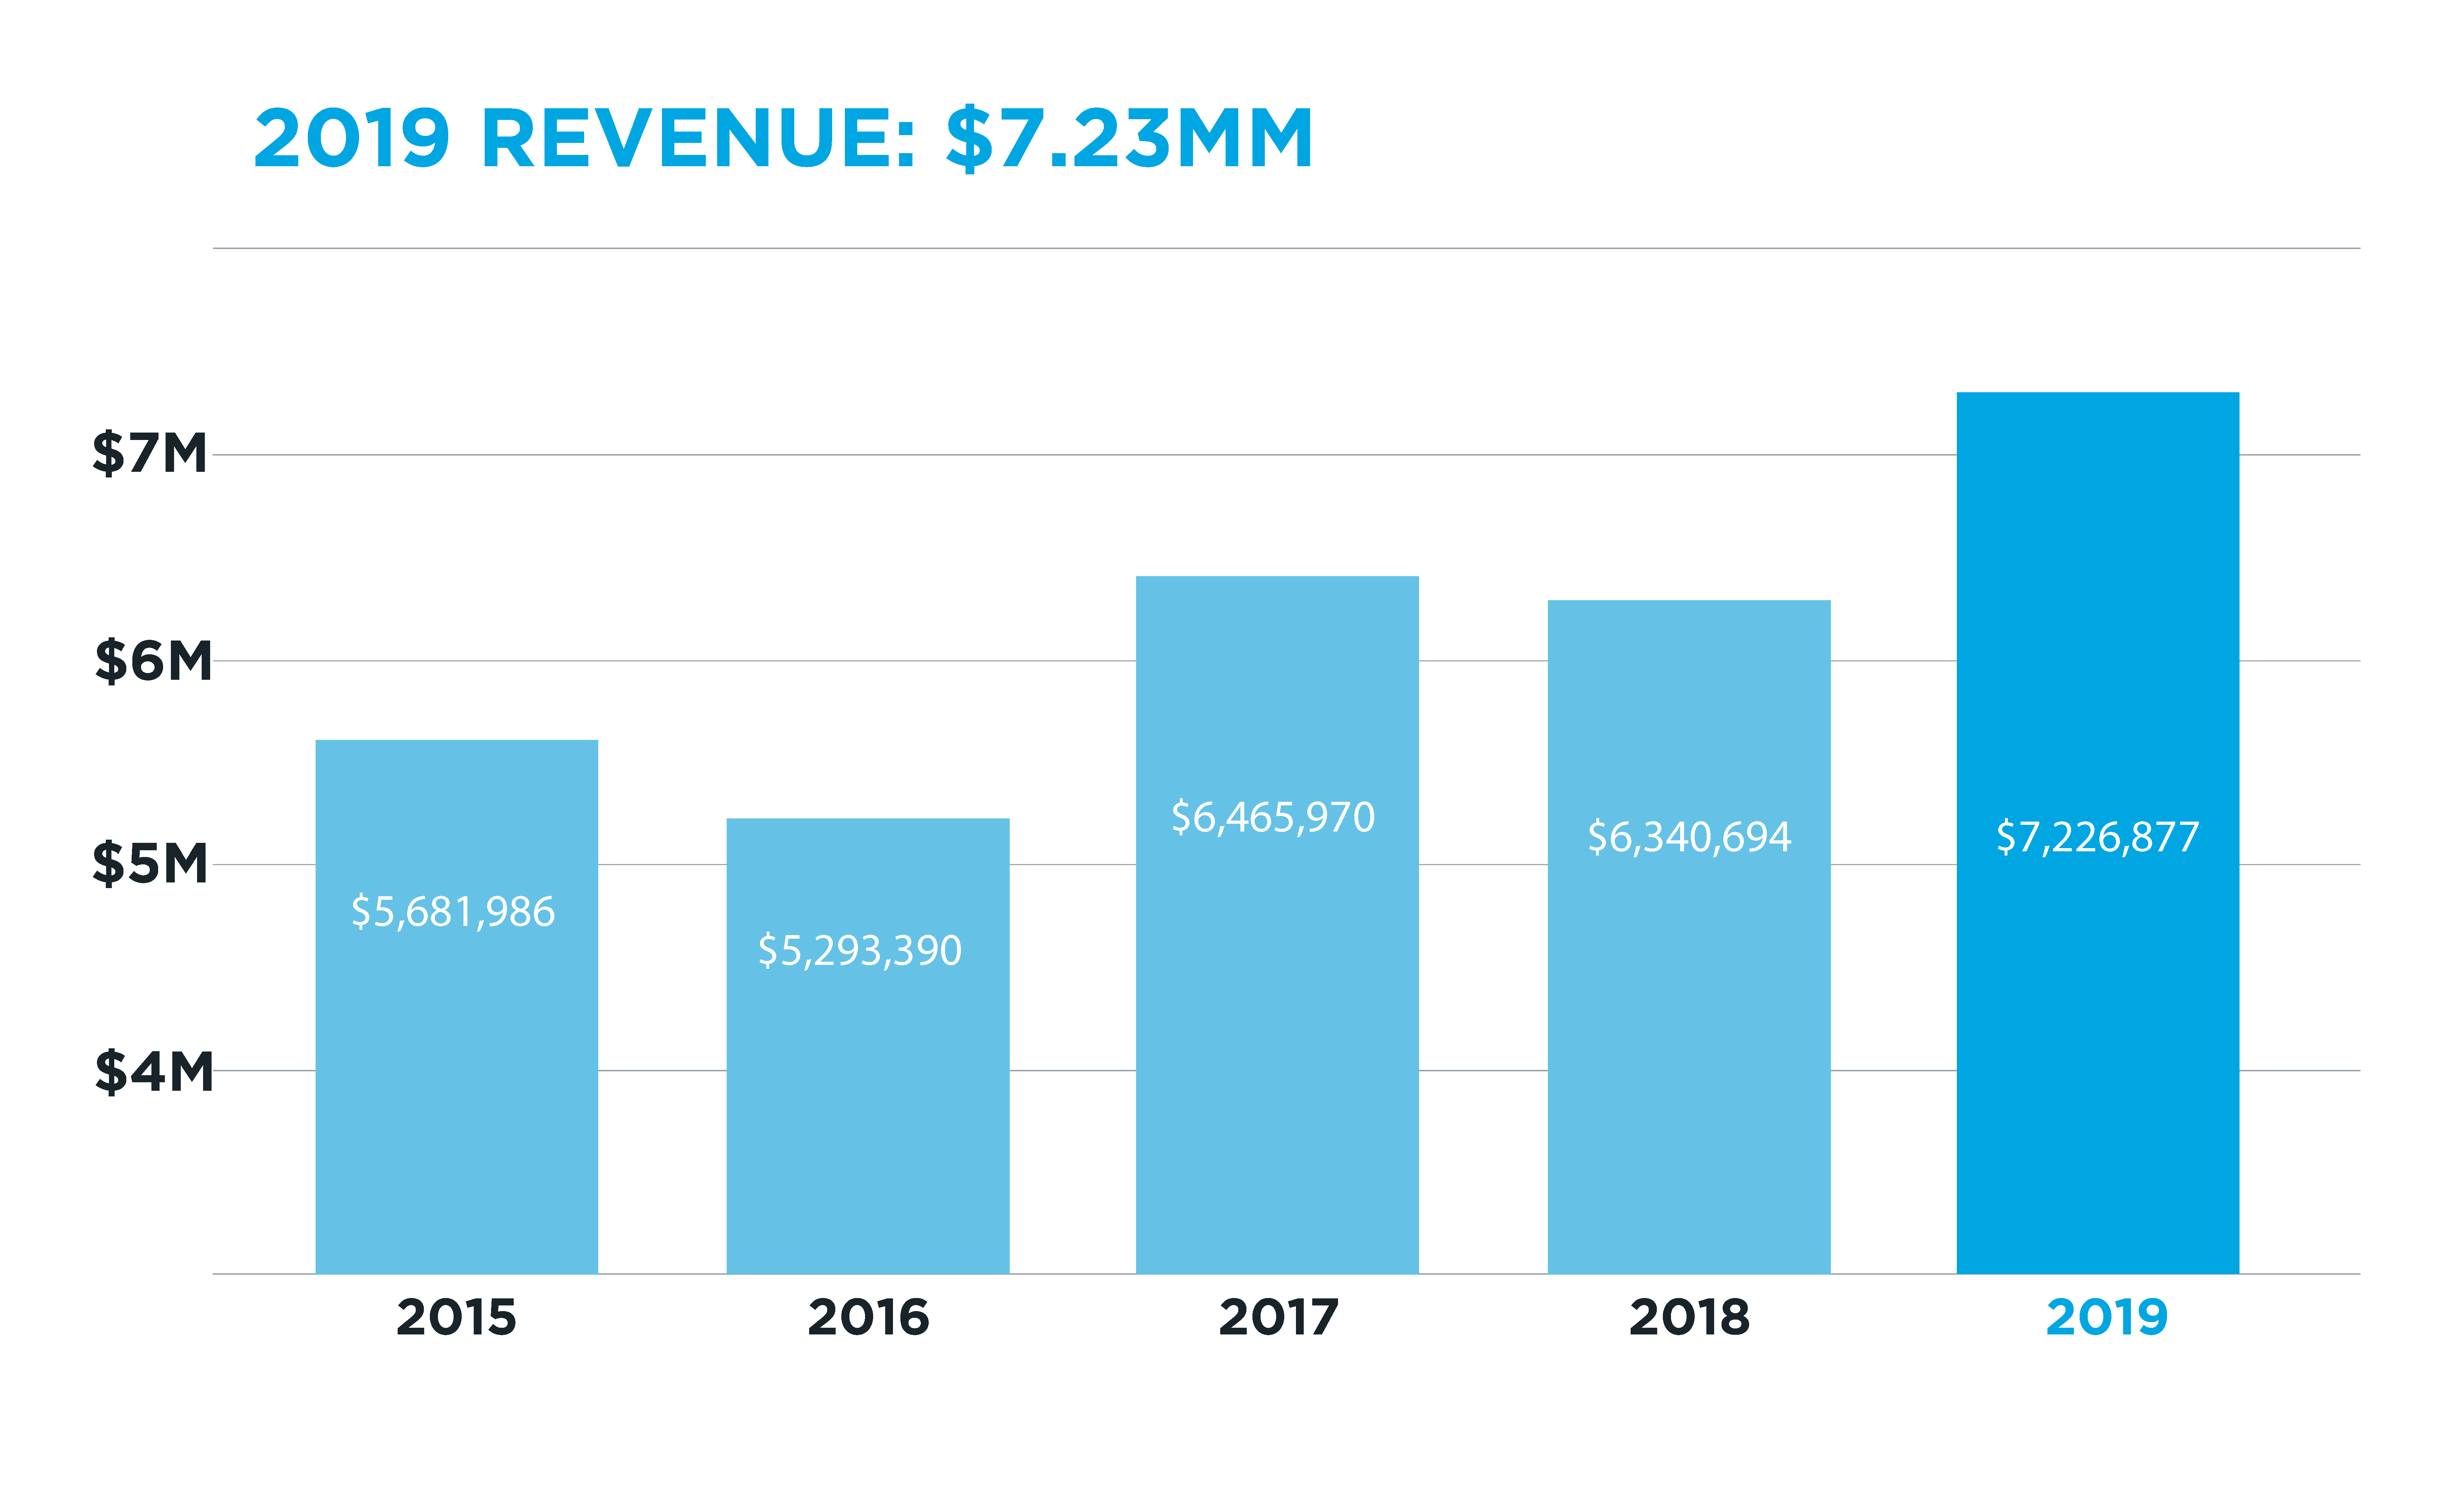 A graph detailing the 2019 revenue for the ORION network